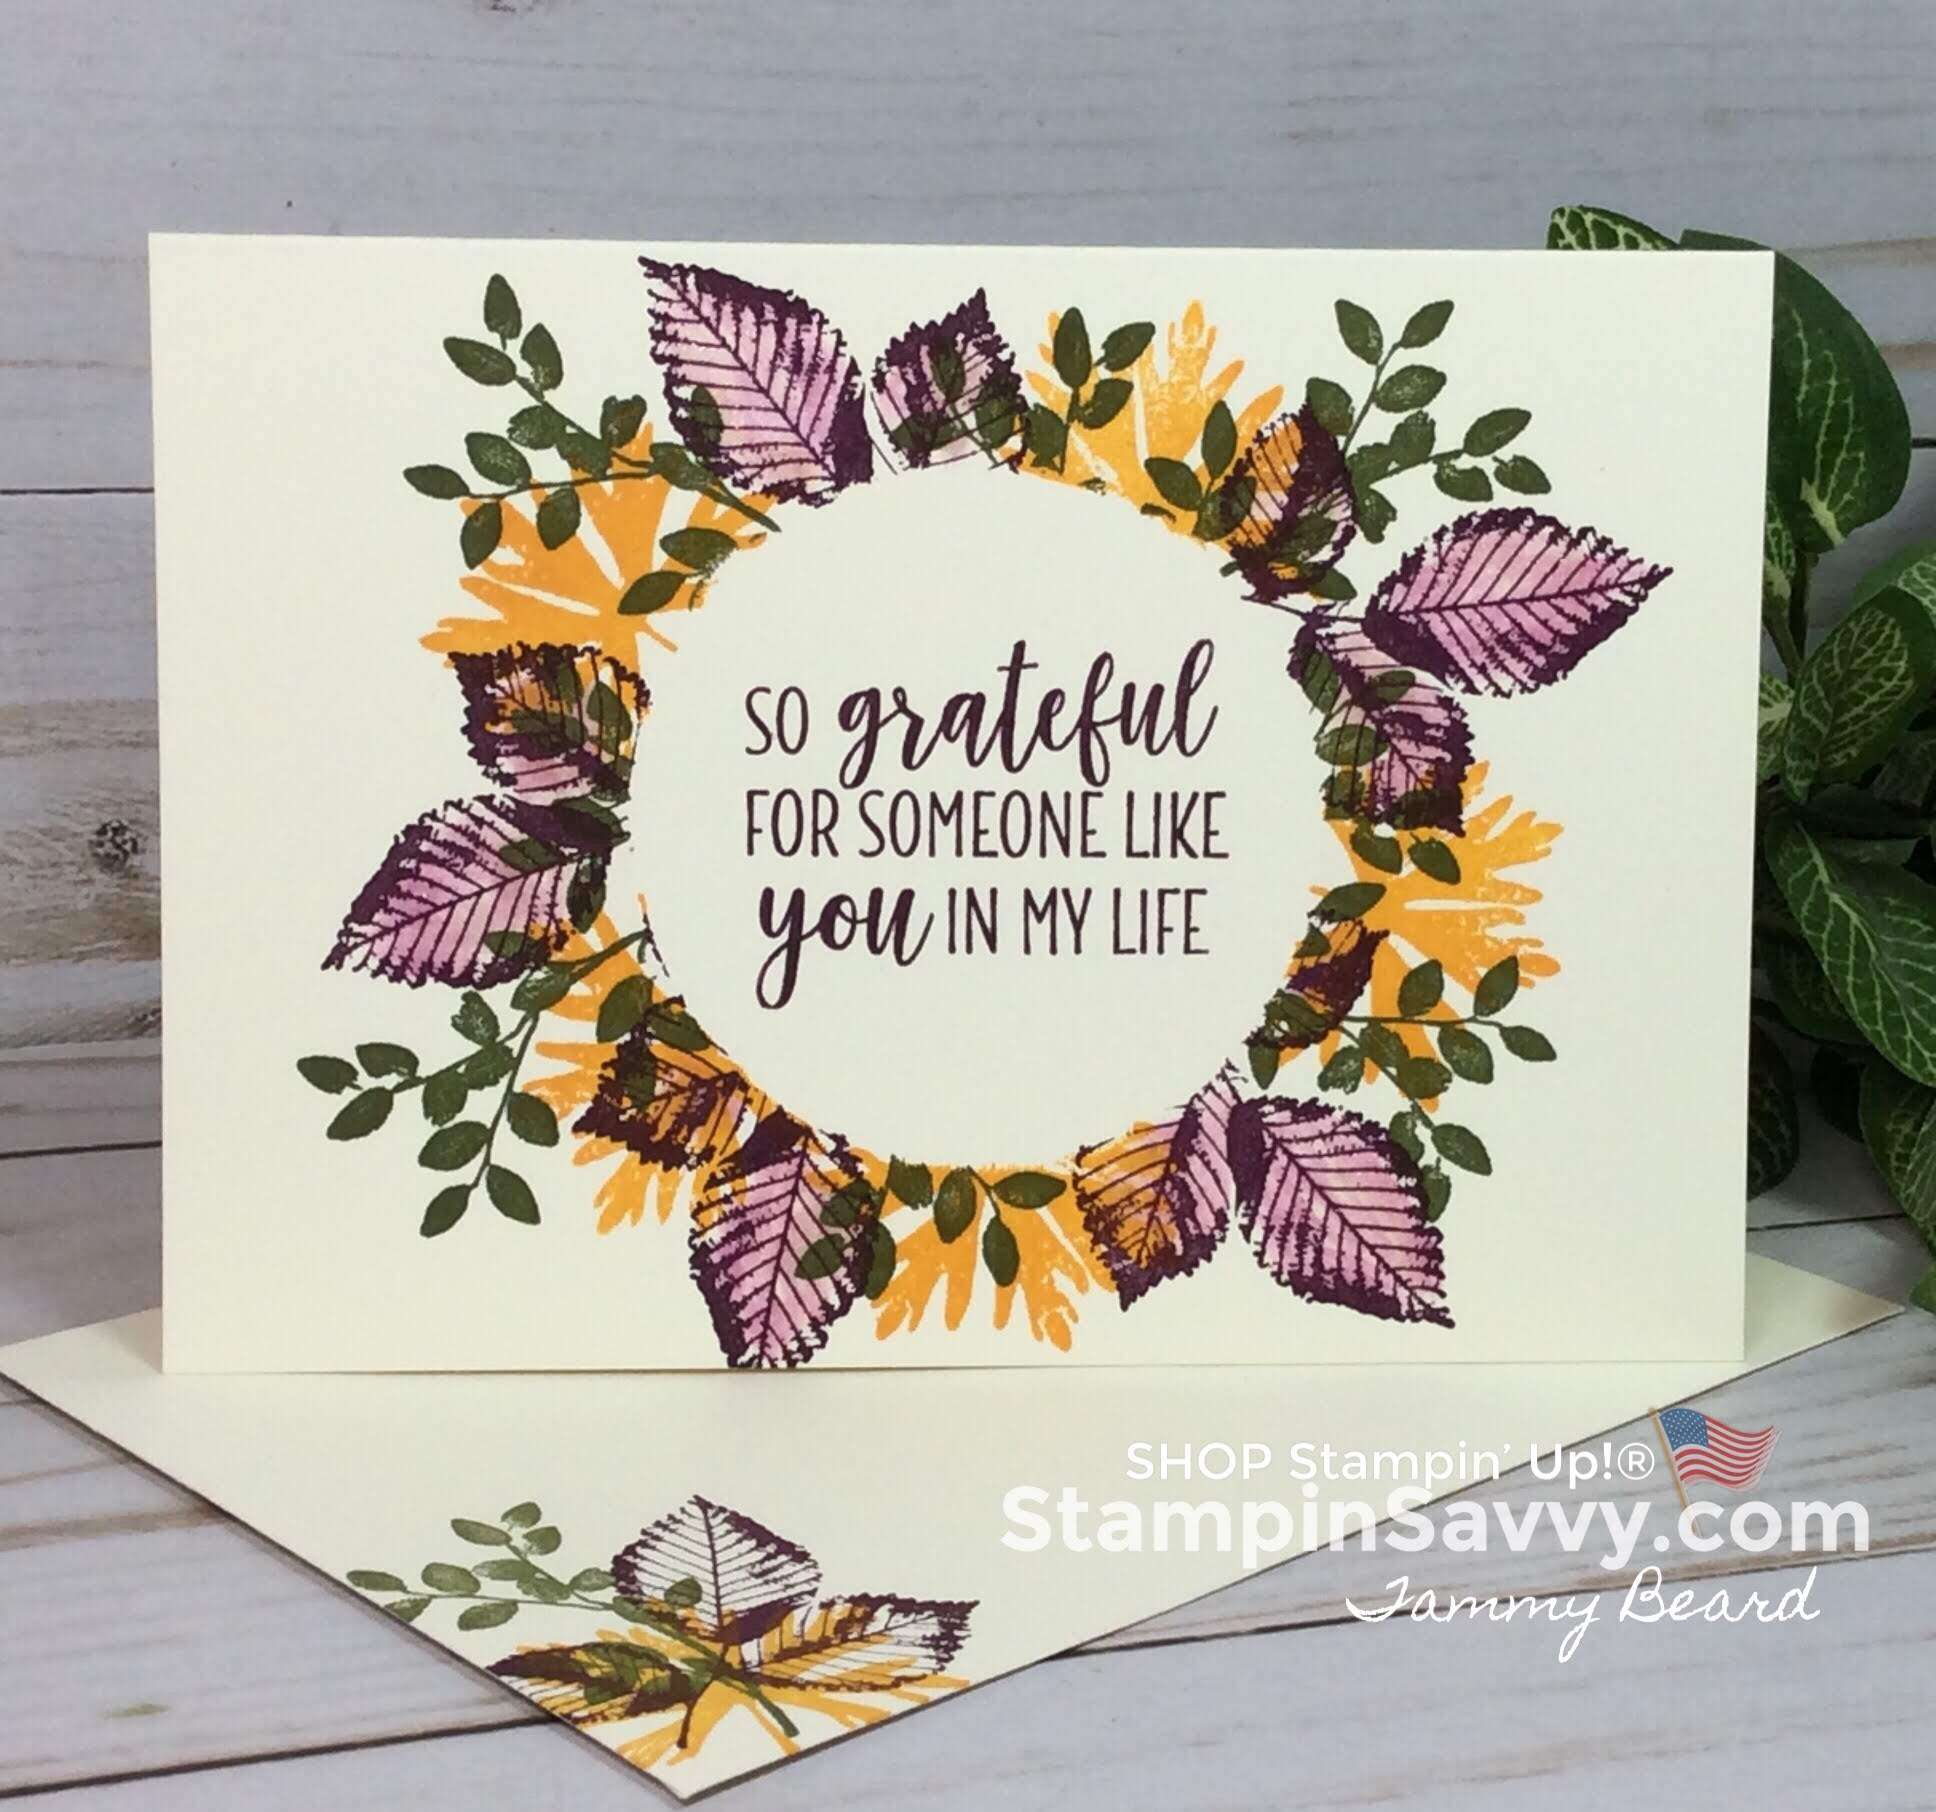 rooted in nature cards, wreath masking technique, stampin up, card ideas, stampinup, stampin savvy, tammy beard